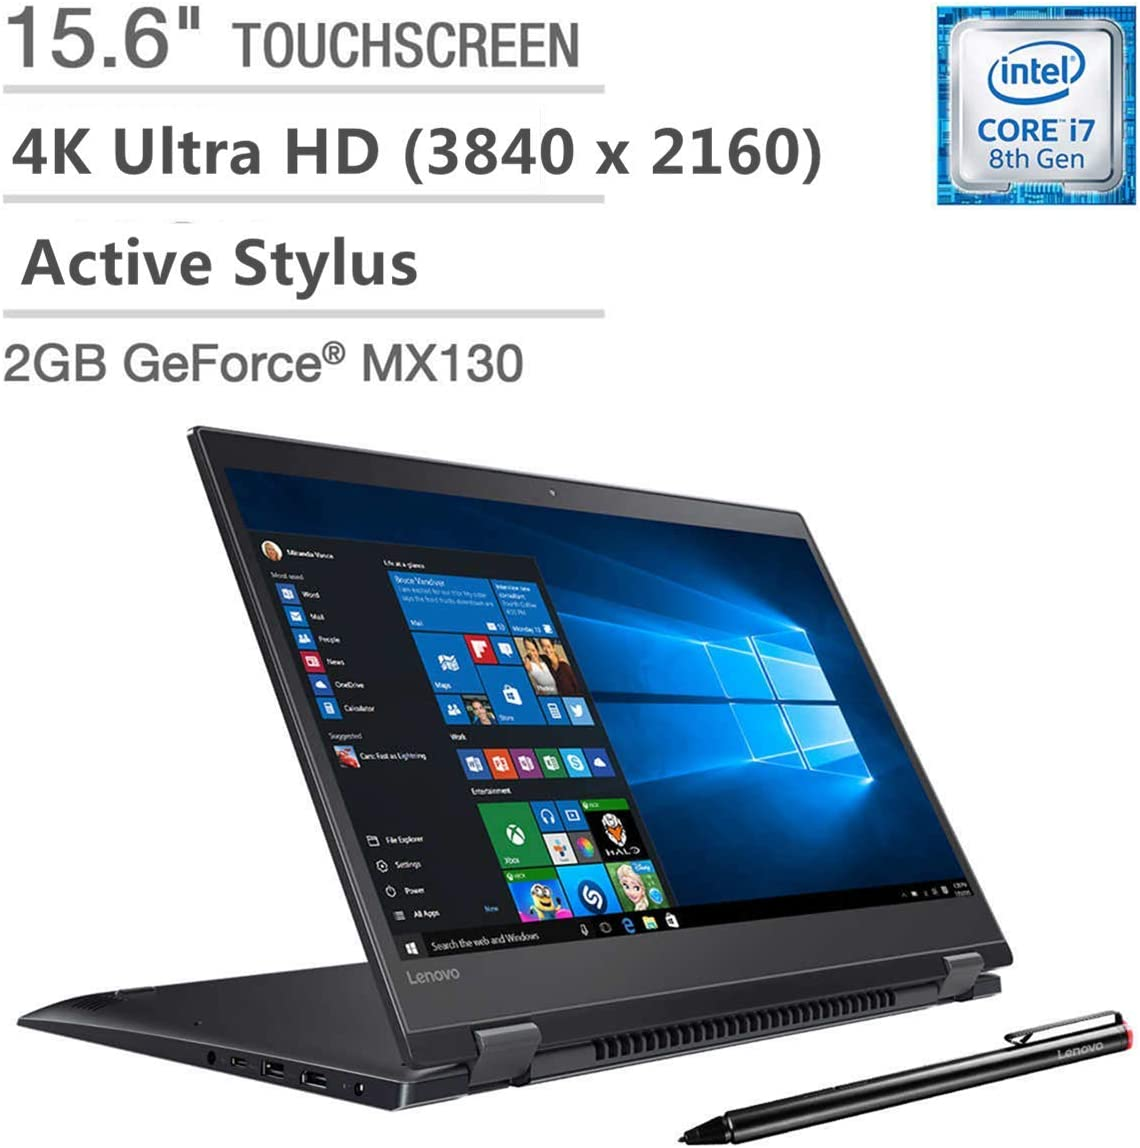 "2019 Lenovo Flex 5 15 2-in-1 15.6"" Touchscreen 4K Ultra HD Laptop Computer, 8th Gen Quad-Core i7-8550U up to 4.0GHz, 16GB DDR4, 1TB SSD, GeForce MX130 2GB, Active Stylus, Windows 10"